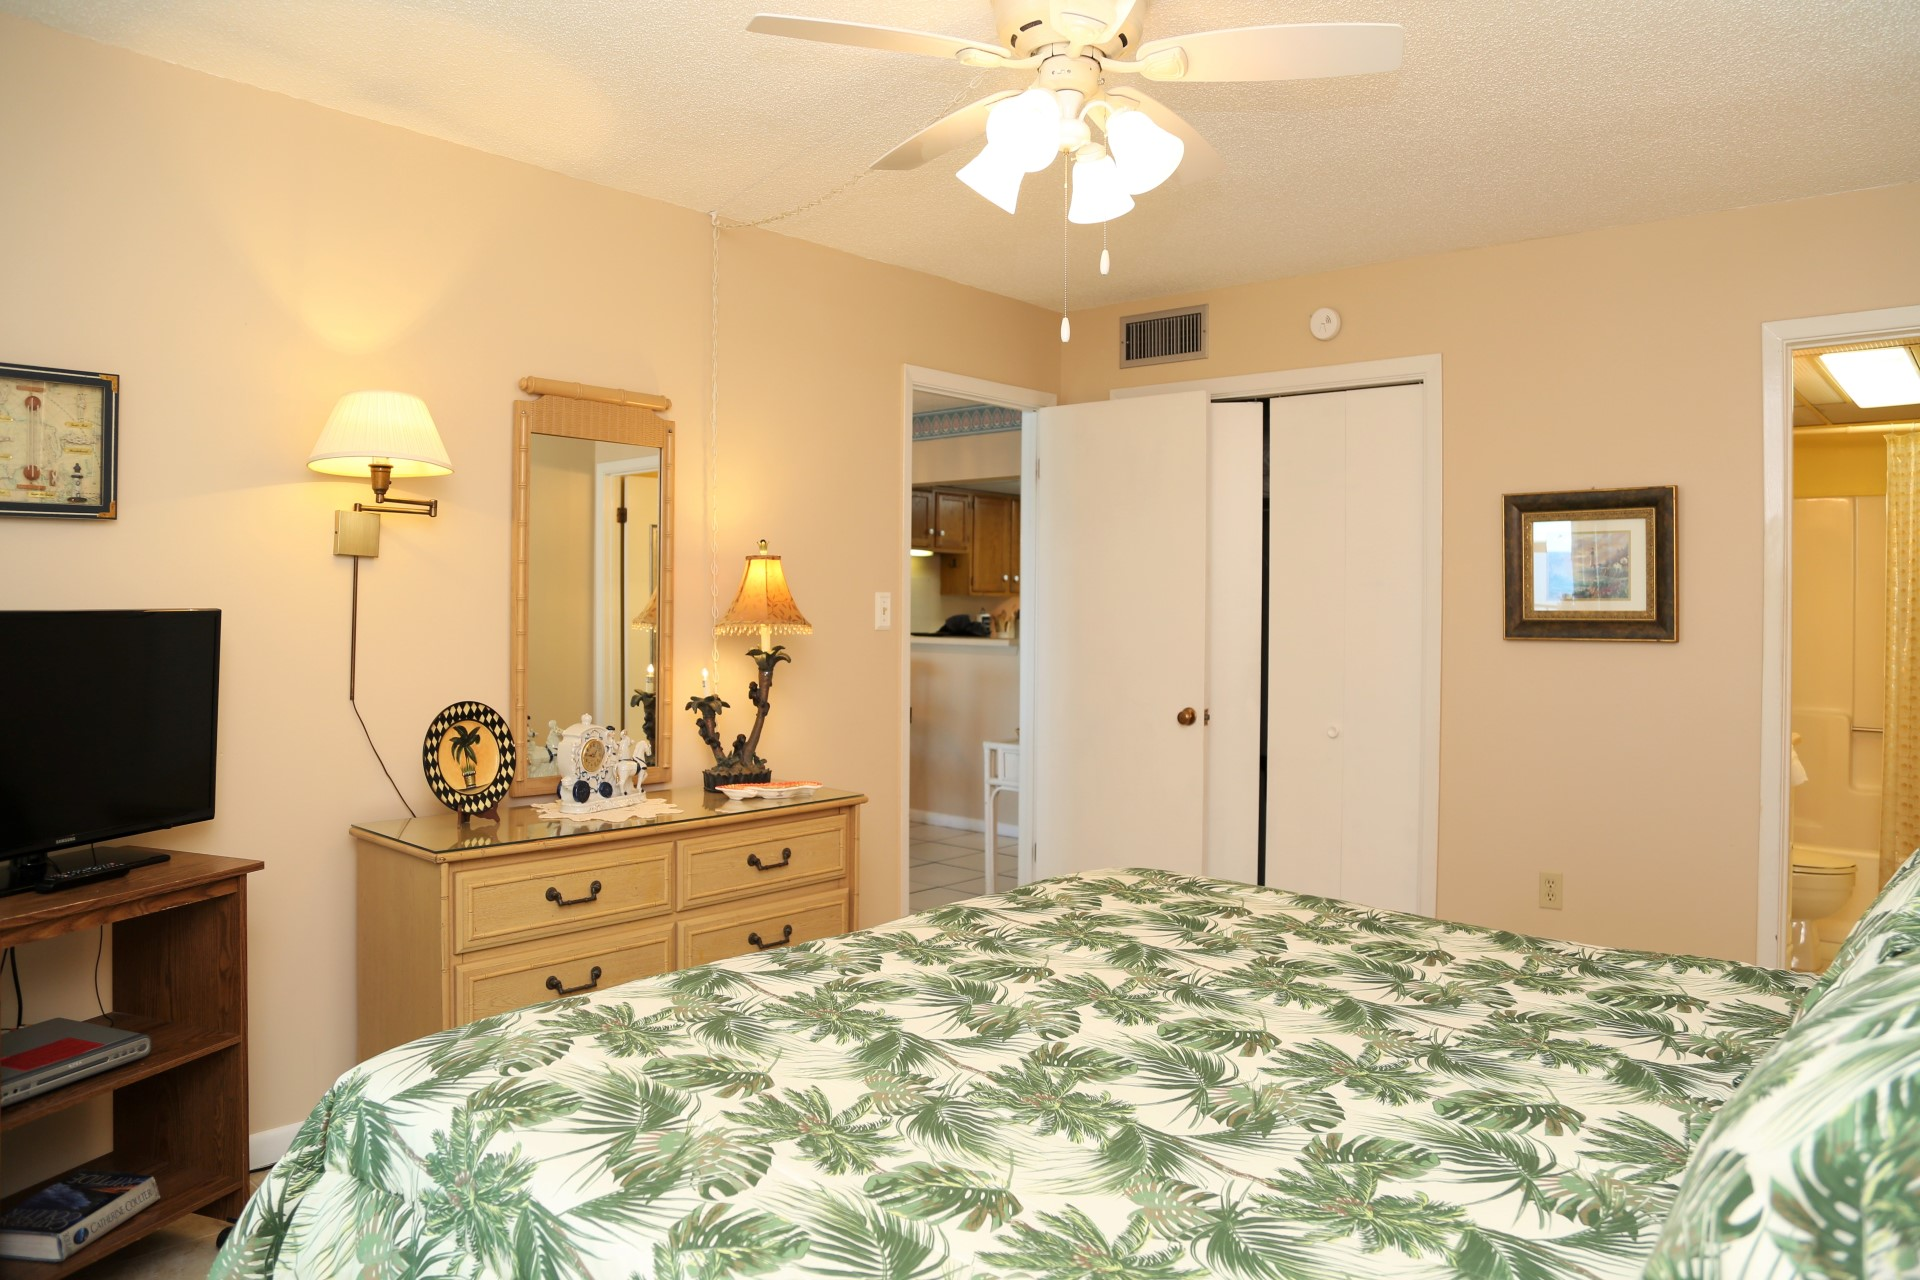 The master bedroom includes a dresser and closet for storage